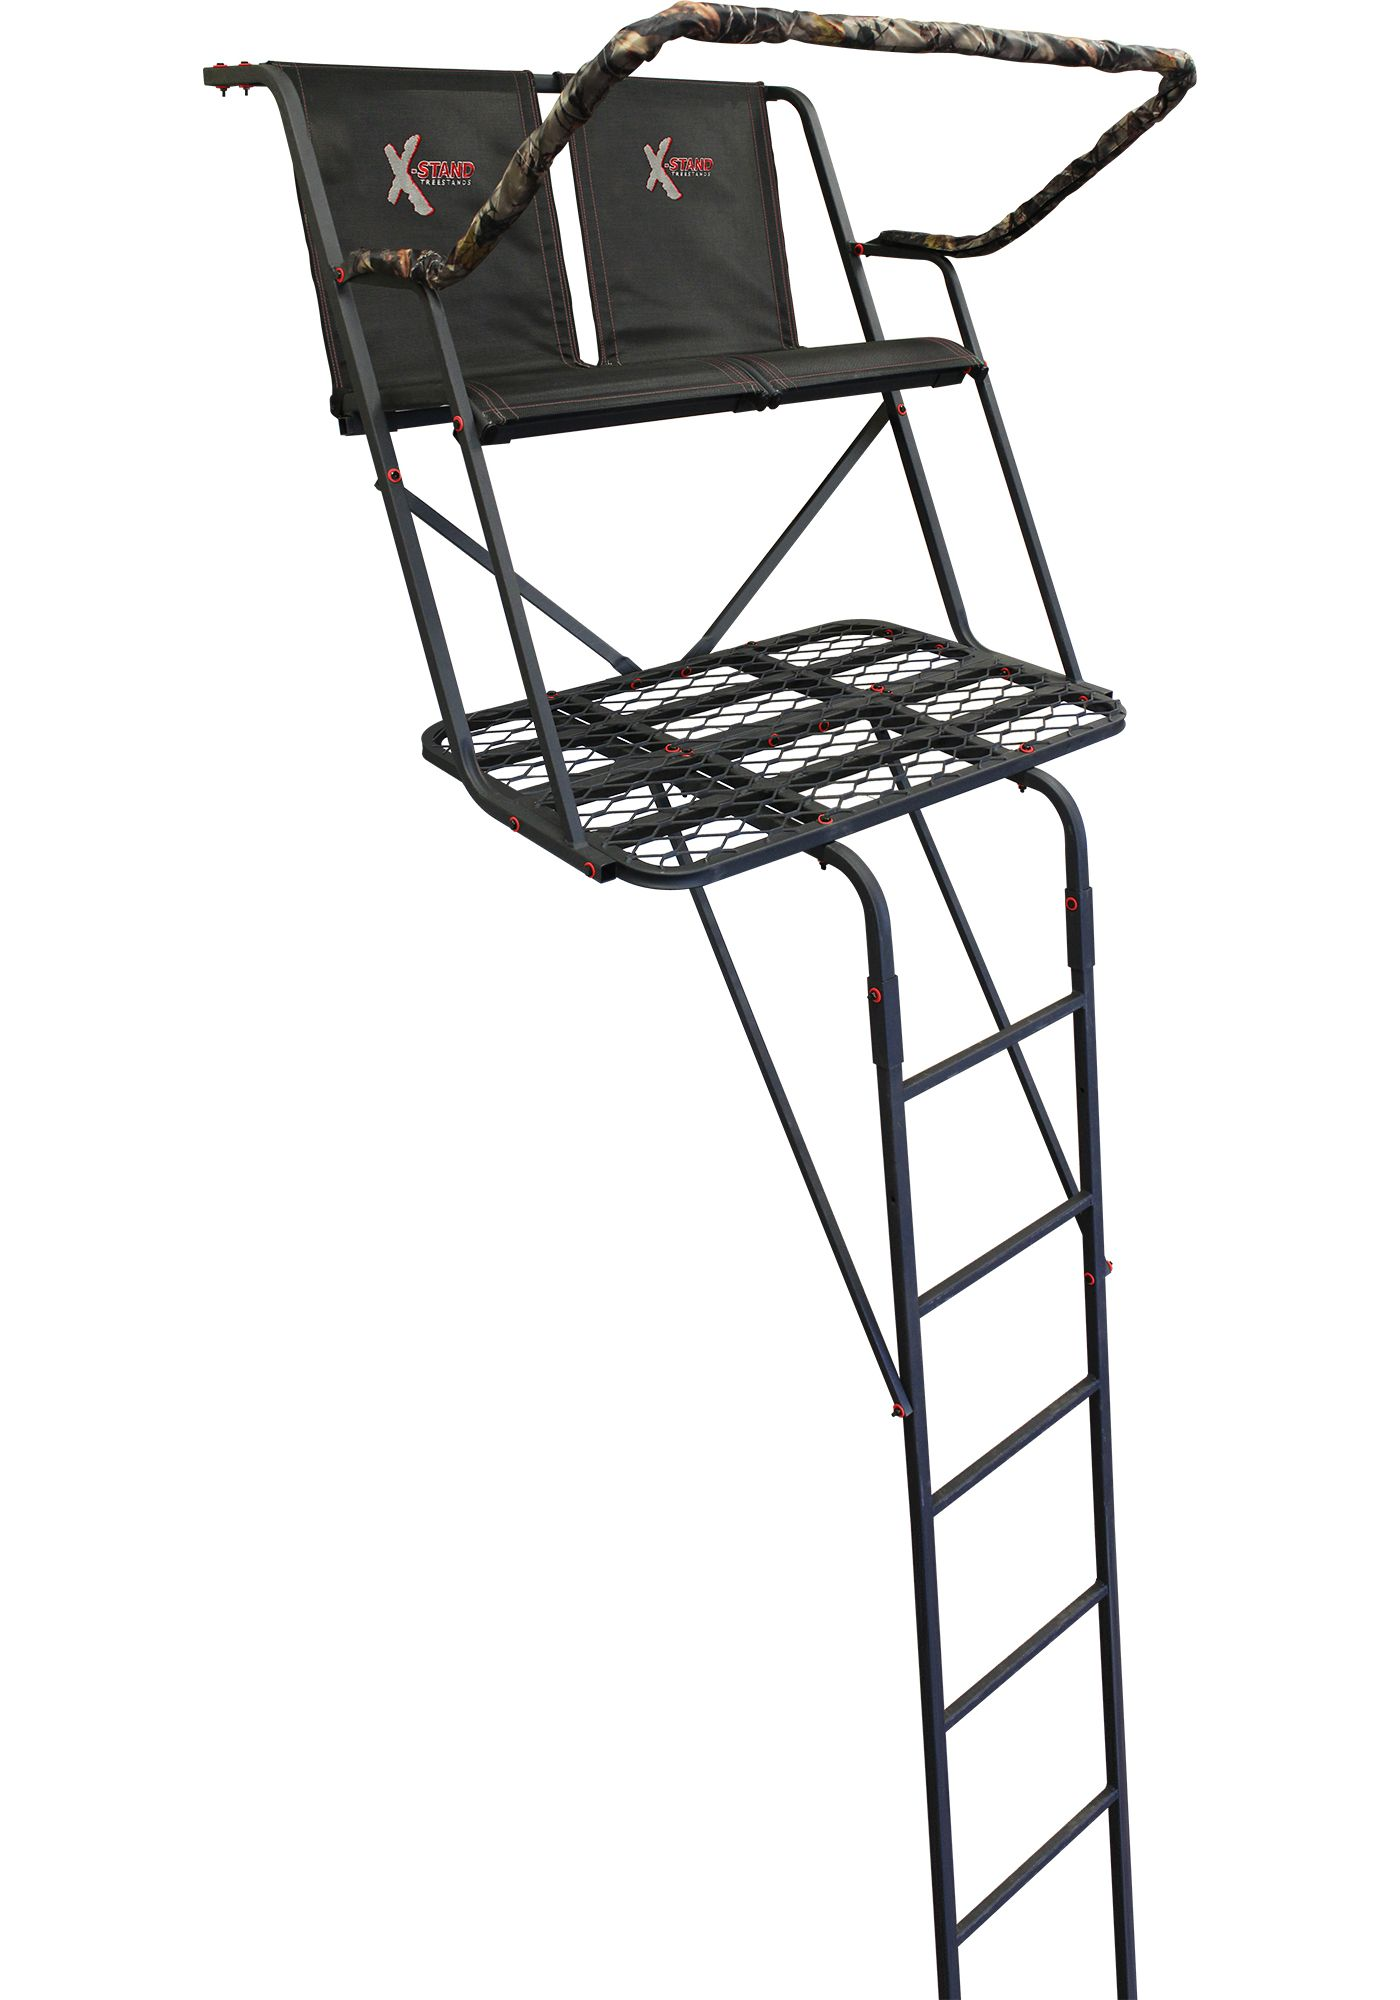 X-Stand Meridian 2-Person 17' Ladder Stand